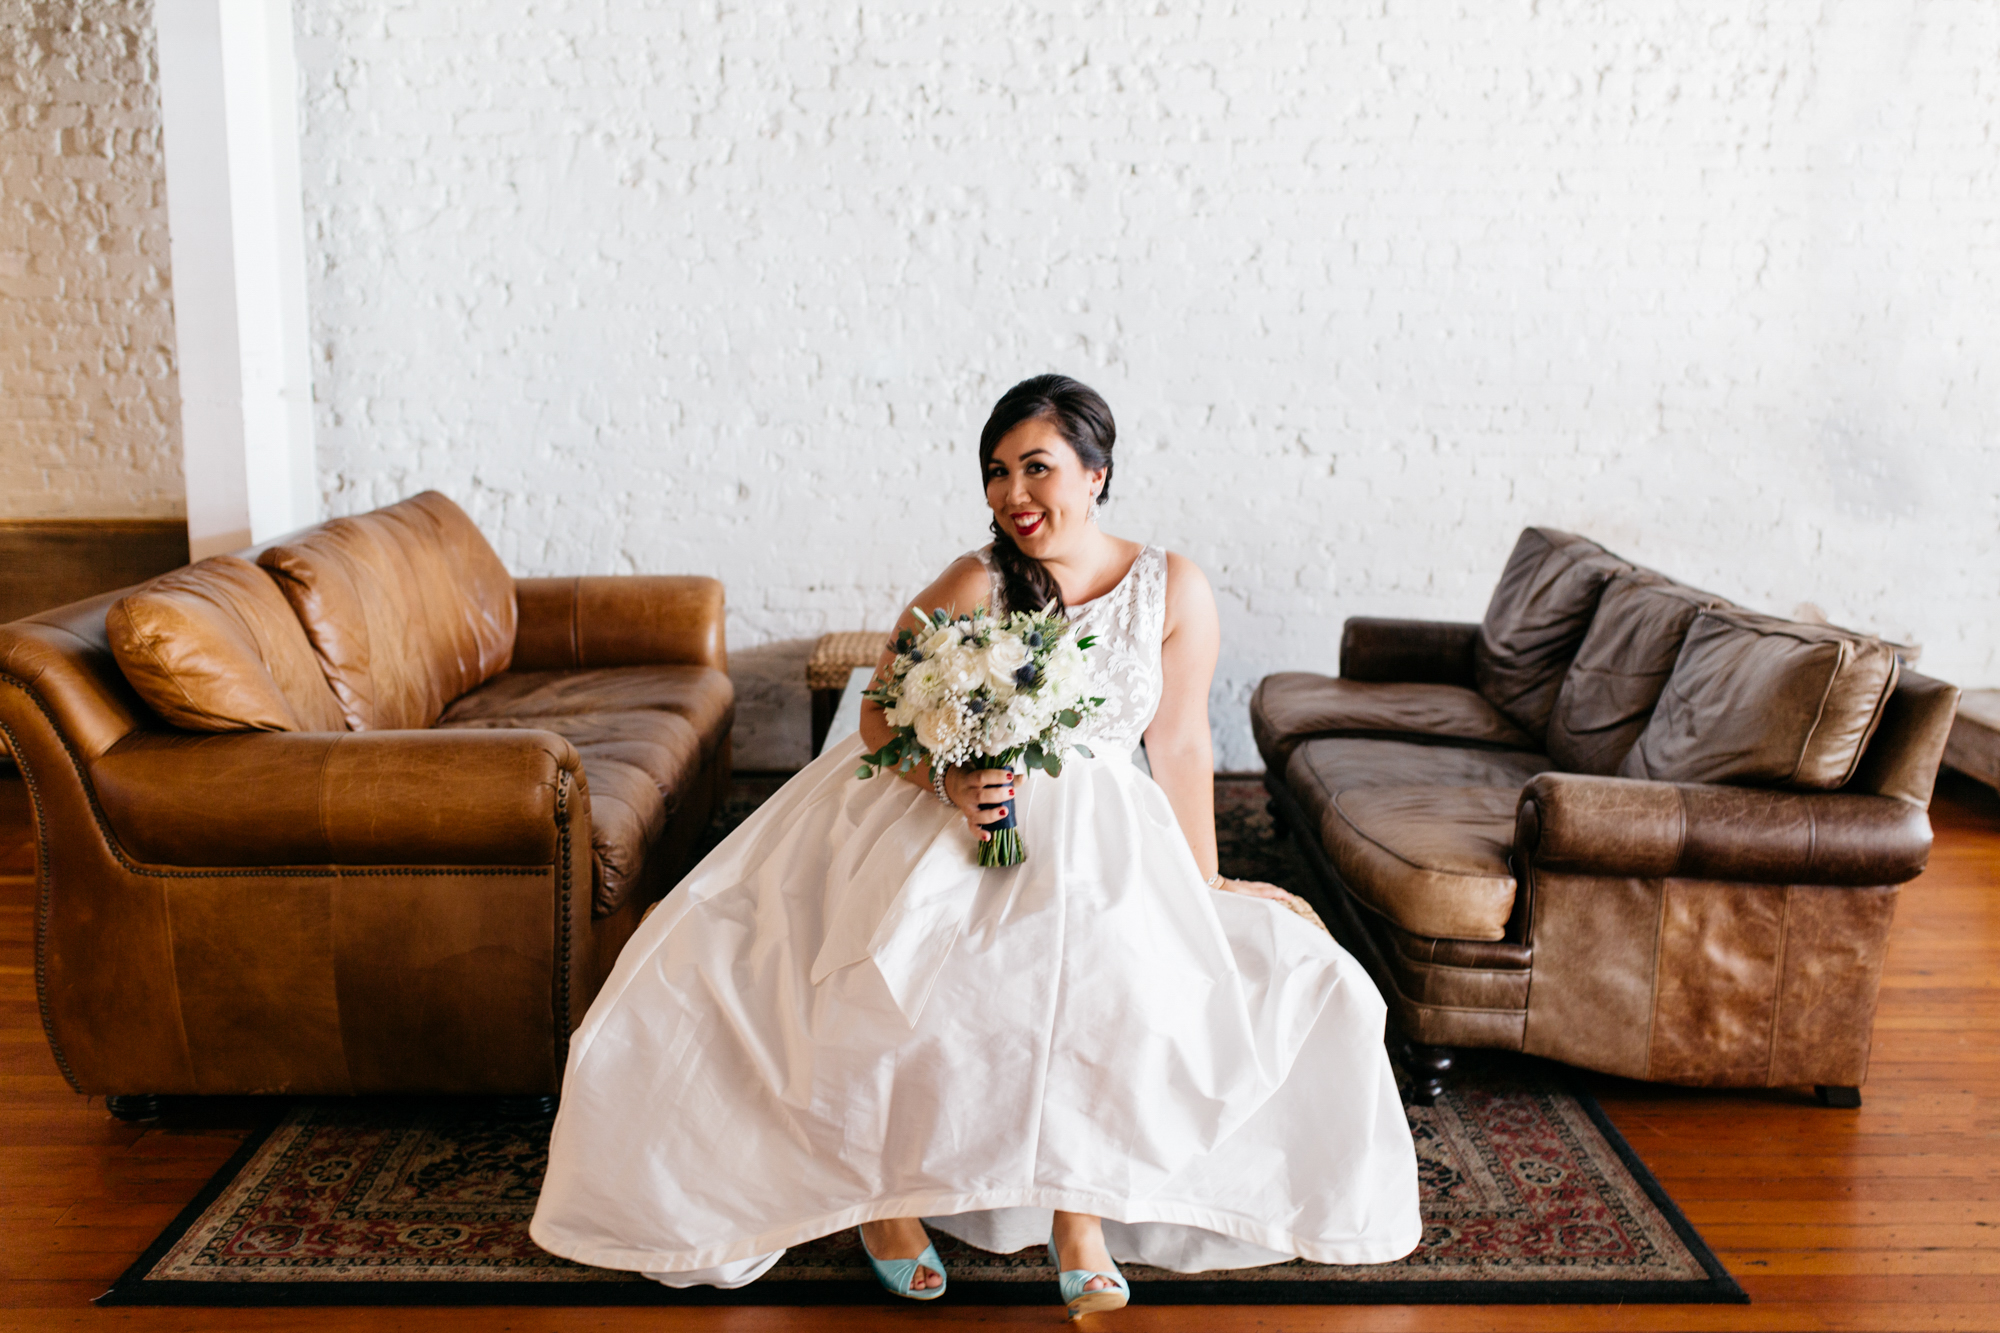 SamErica Studios - Los Angeles Wedding Photographer - The Loft on Pine-41.jpg